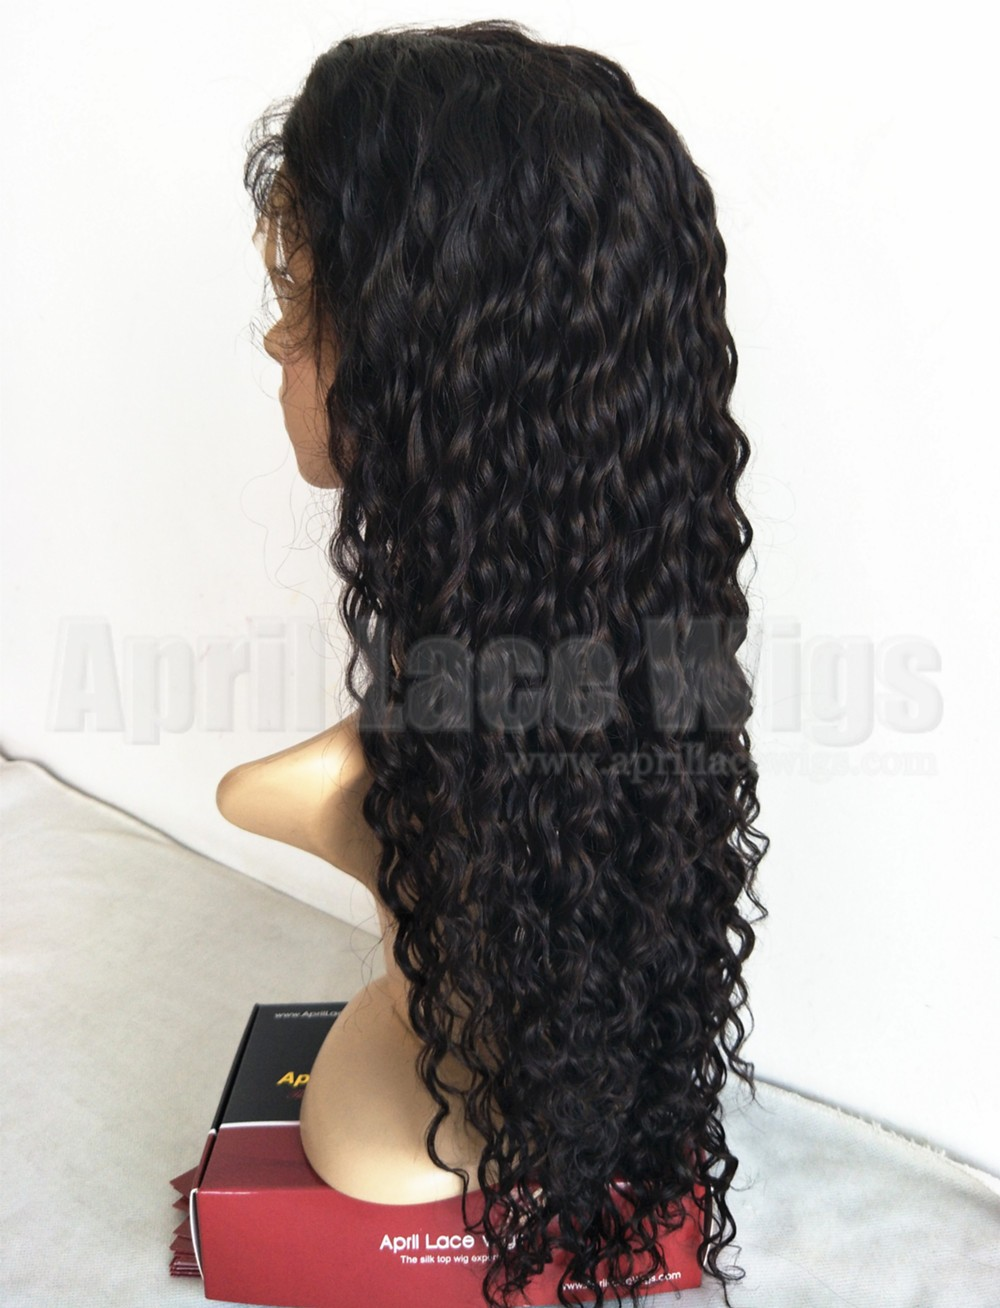 Brazilian virgin wet wave 360 wig glueless wig preplucked hairline